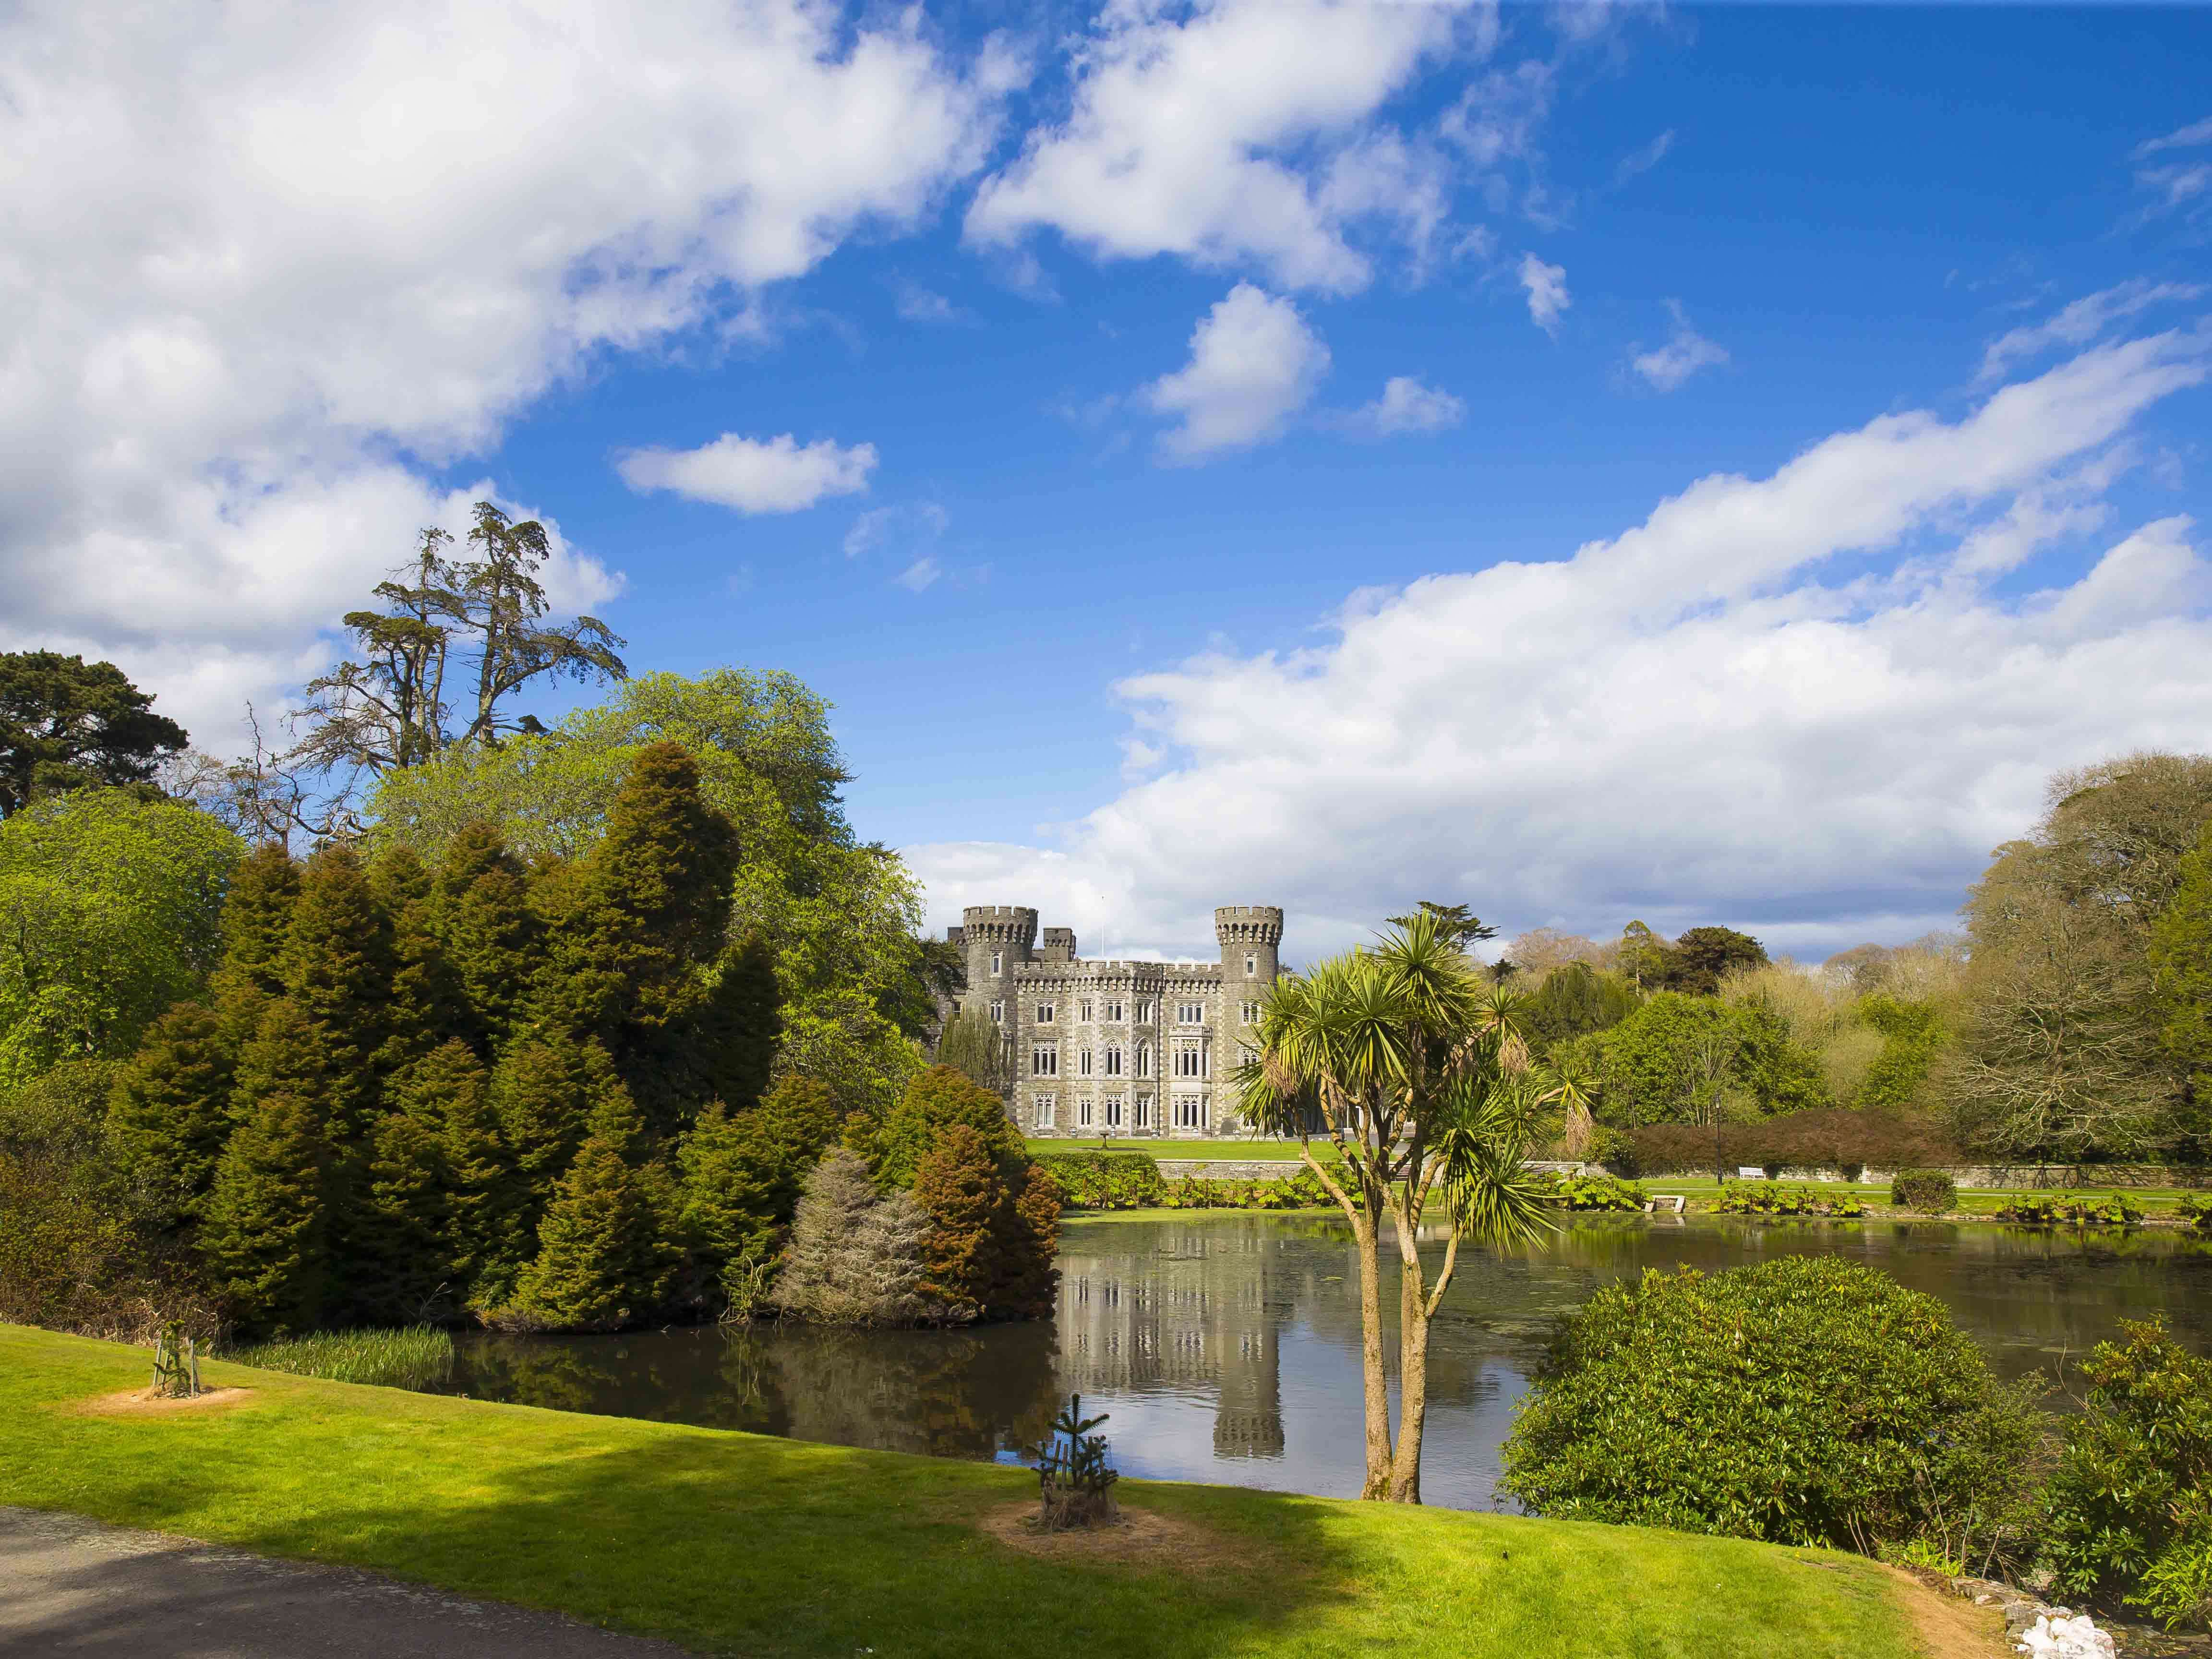 Photo of Johnstown Castle with lake view in front